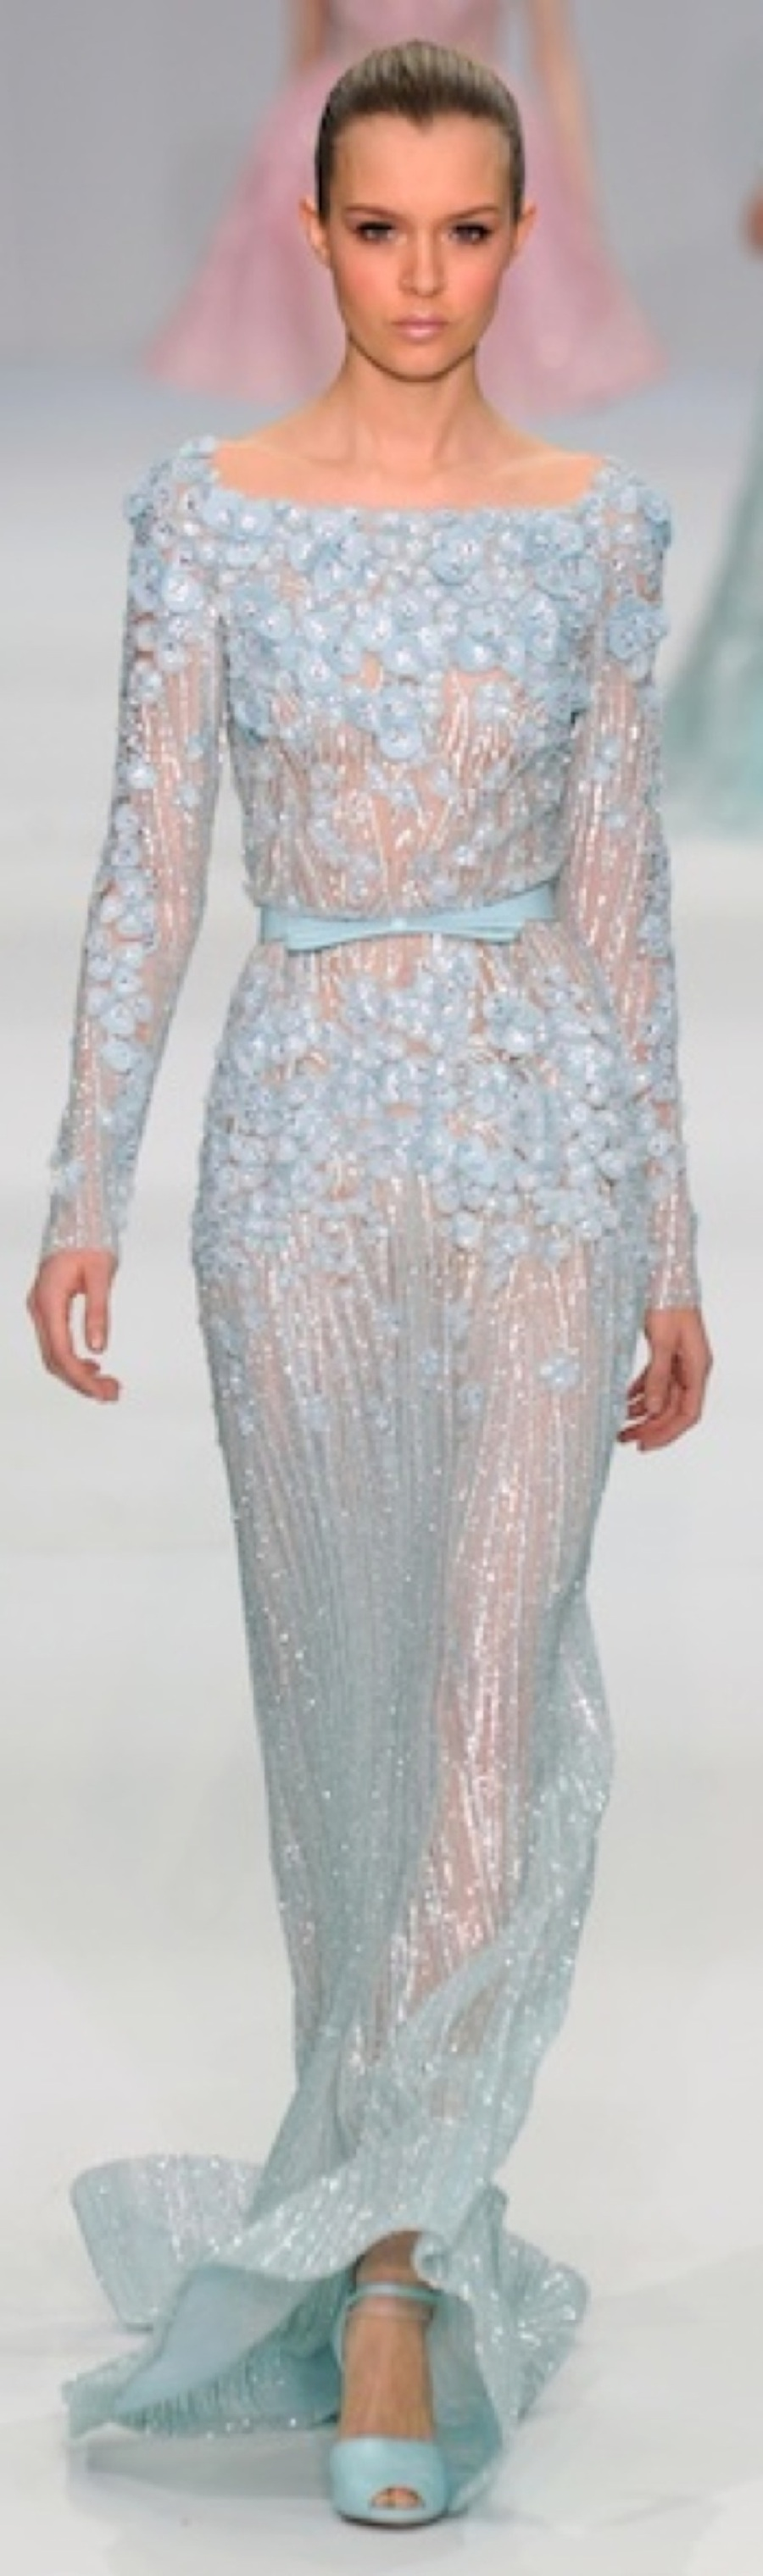 Elie saab spring haute couture misc for other boards